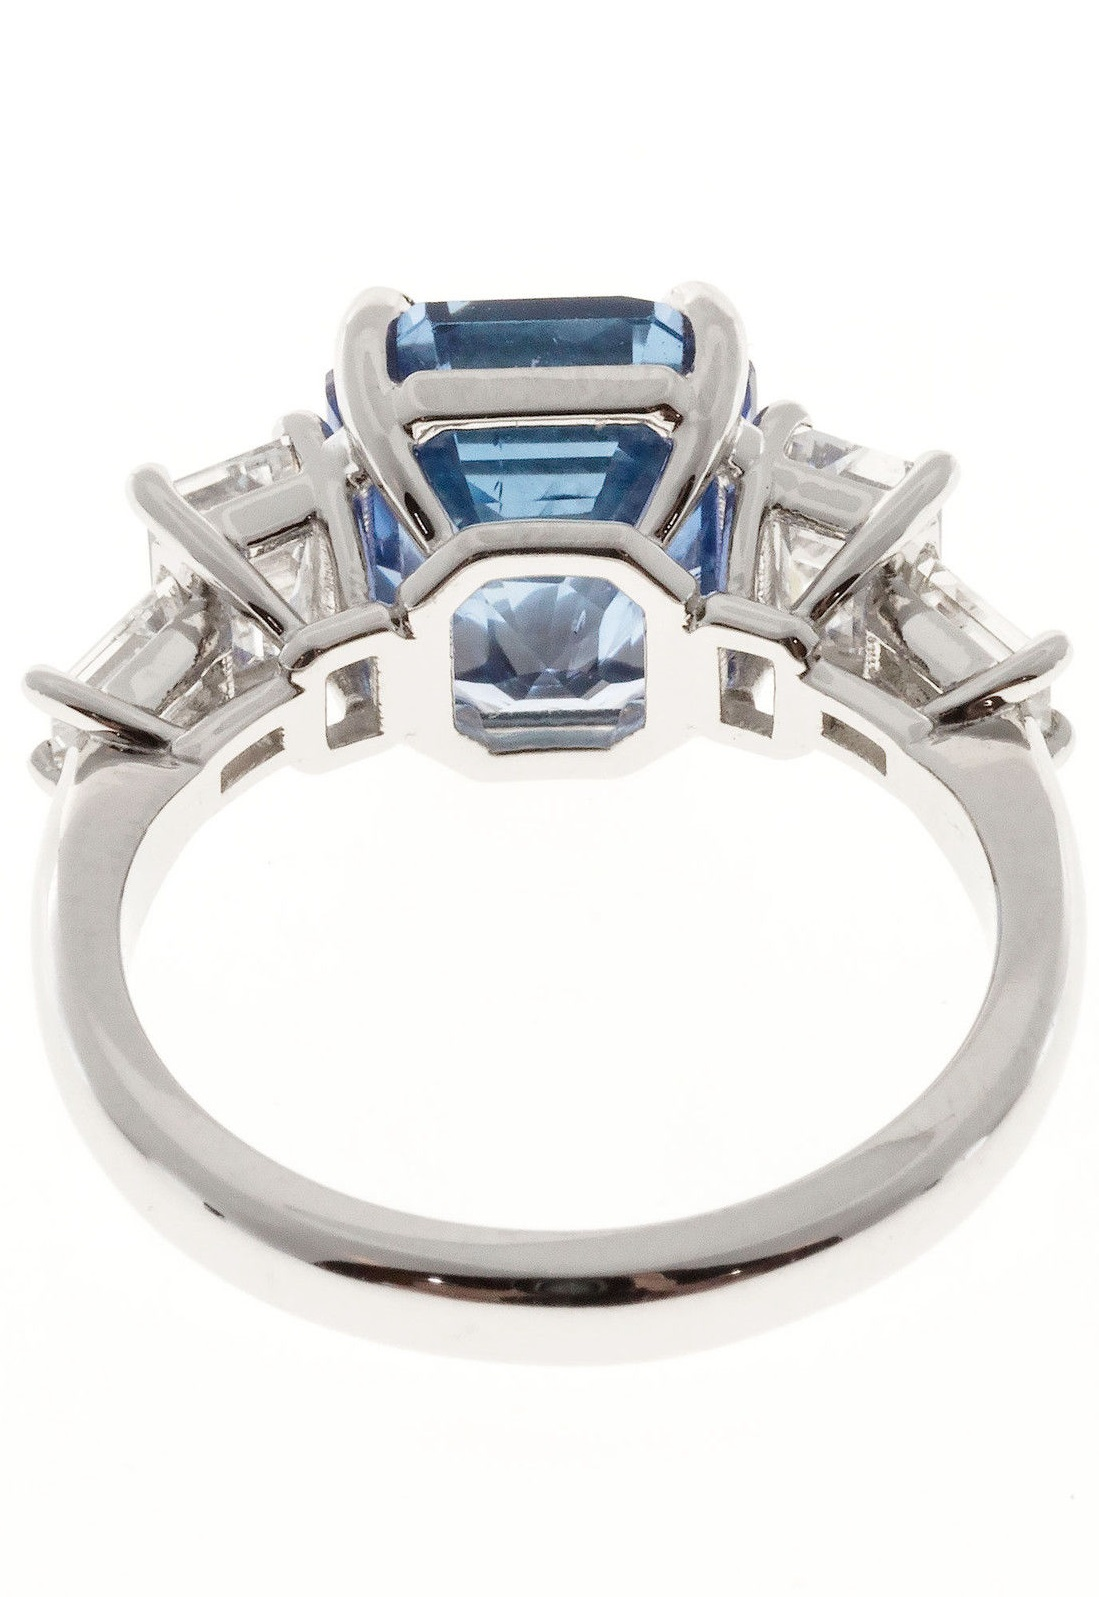 Natural Emerald Cut Sapphire Diamond Engagement Ring Platinum